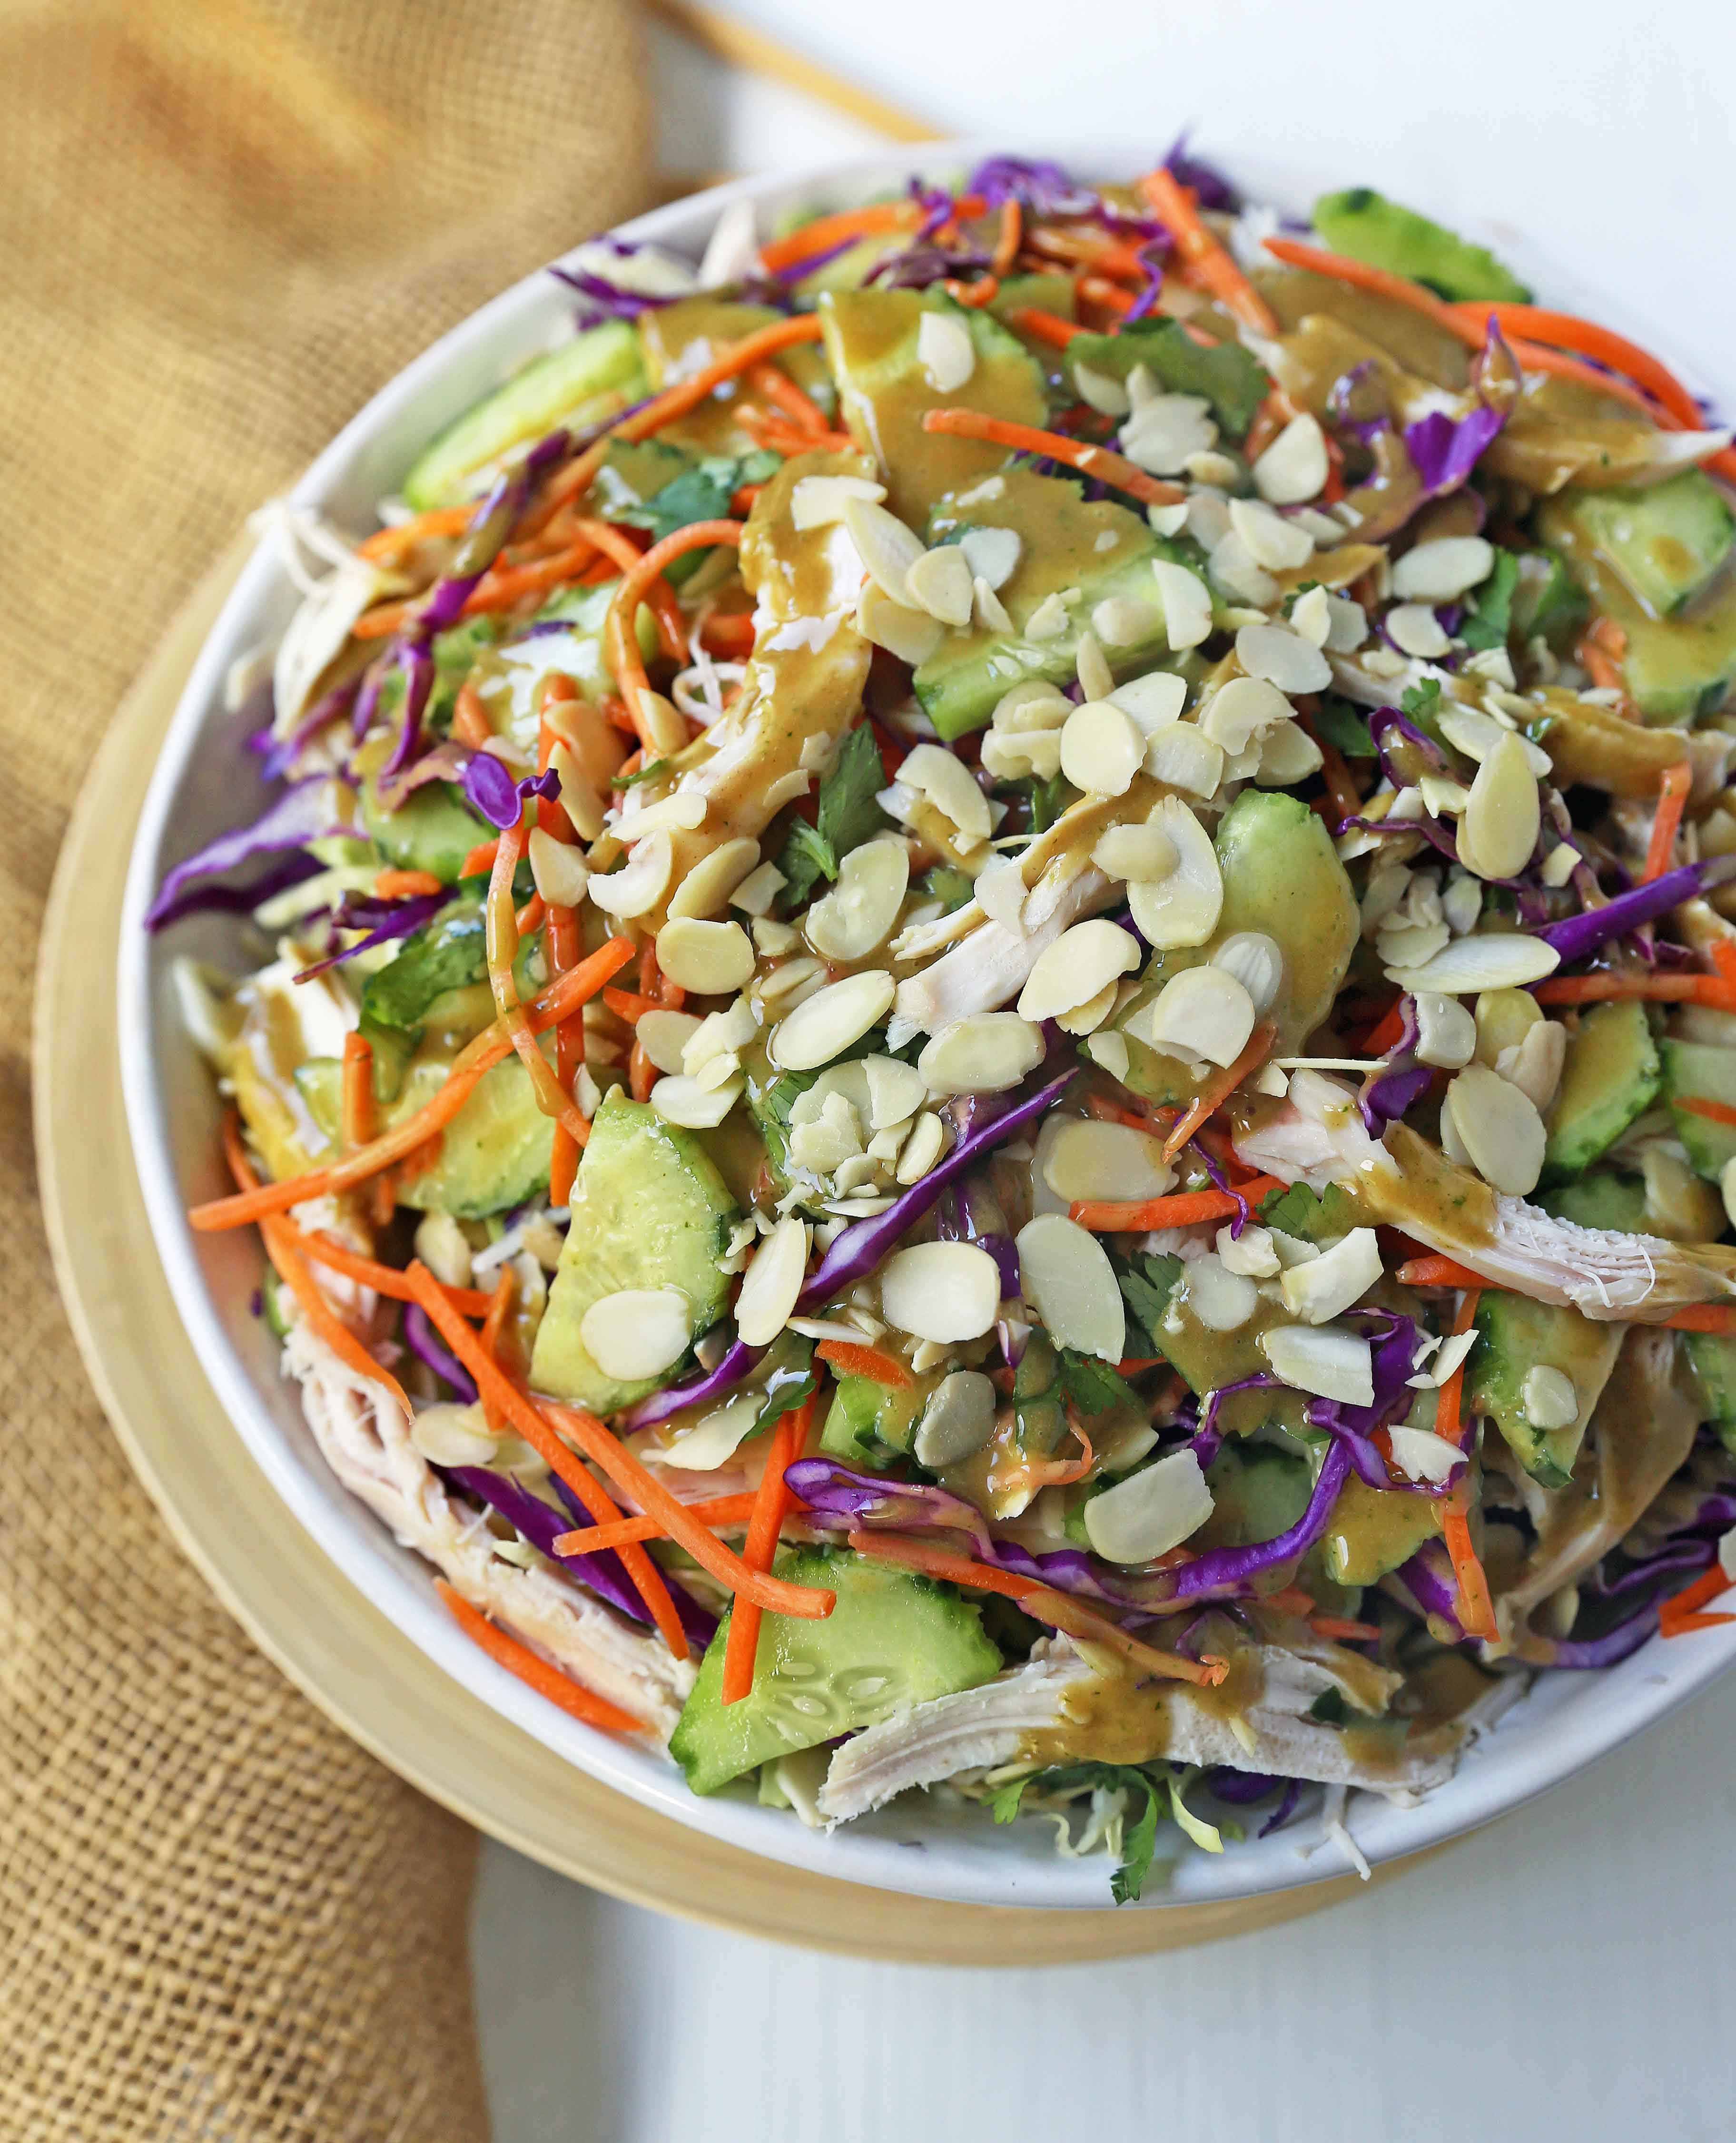 Thai Chicken Salad with Peanut Dressing. Crunchy Thai salad with cabbage, carrots, cucumber, slivered almonds, tender chicken in a homemade peanut dressing. A flavorful Chinese Chicken Salad. www.modernhoney.com #asiansalad #chickensalad #thaichickensalad #chinesechickensalad